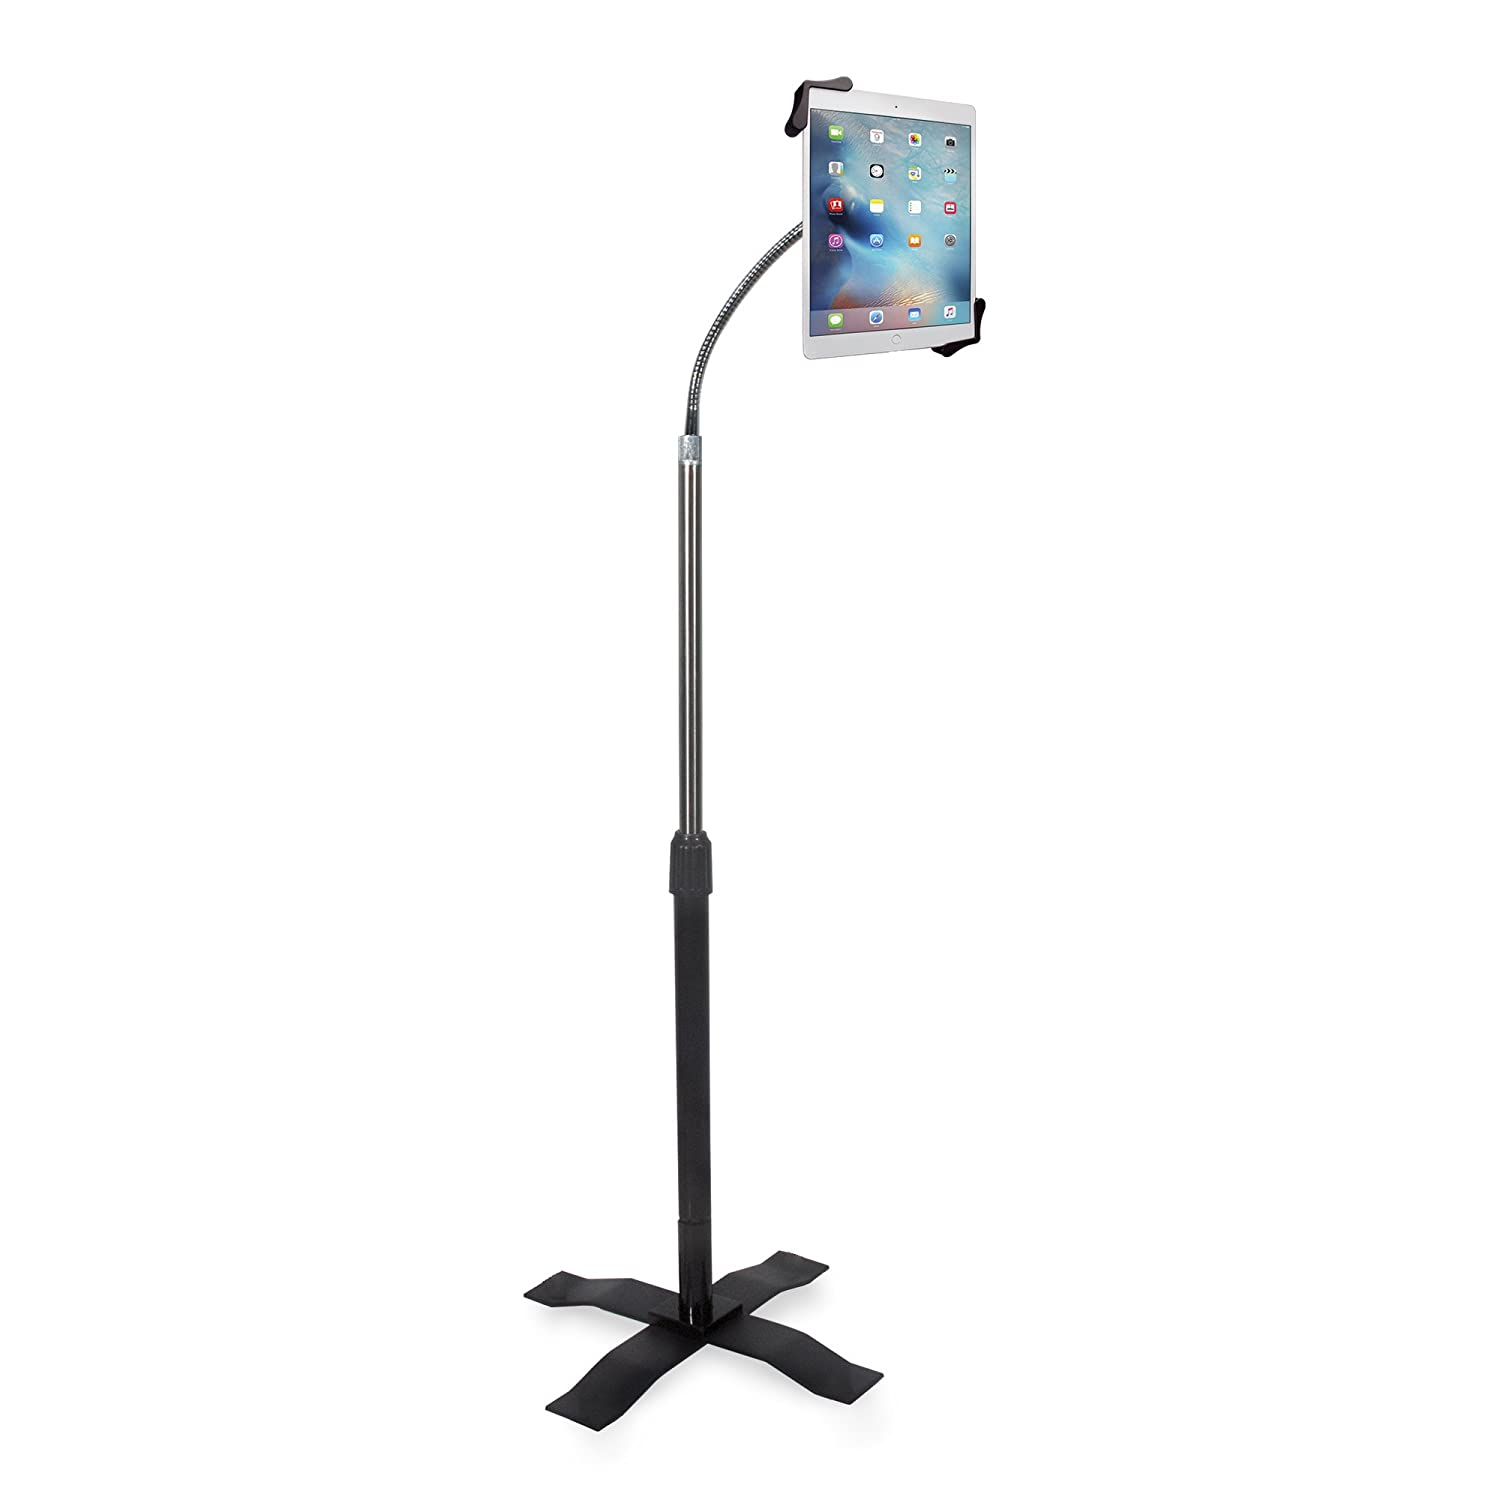 Compact, Height-Adjustable Tablet Floor Stand with Lock and Key Security, Flexible Gooseneck, Telescoping Pole and Optional Wheels, Compatible with iPad (Gen. 5-6), iPad Pro 9.7, and iPad Air CTA Digital PAD-SCGS9